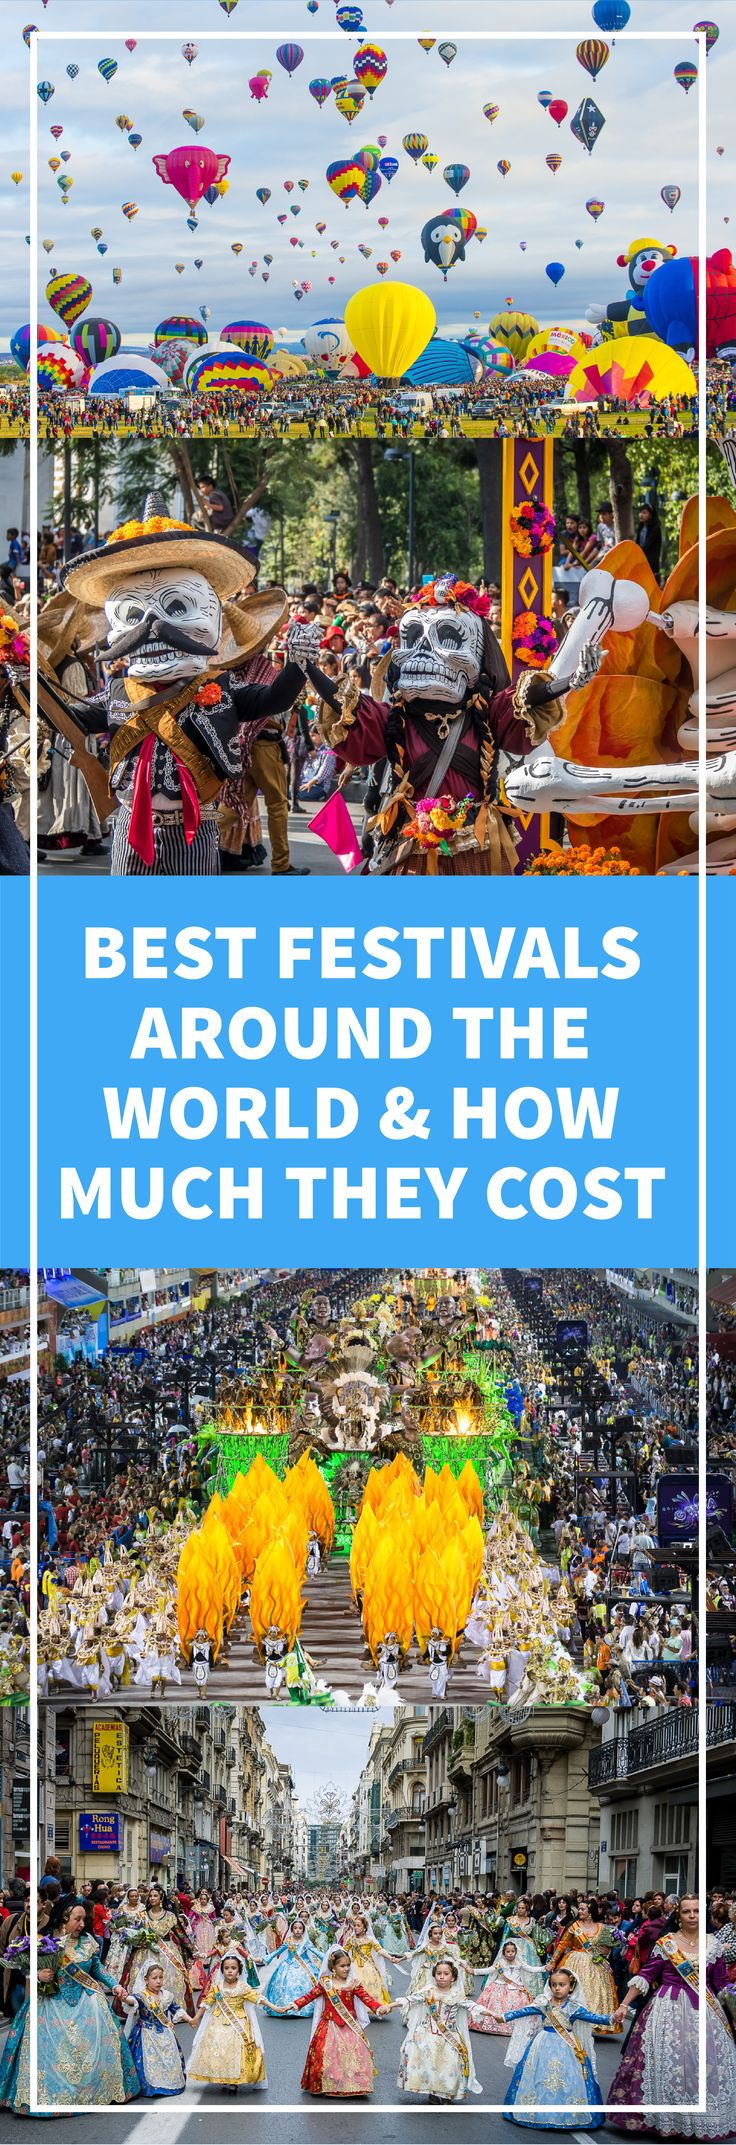 The absolute best festivals around the world and how much they will cost you. Who wouldn't want to miss one of these life-changing events?!